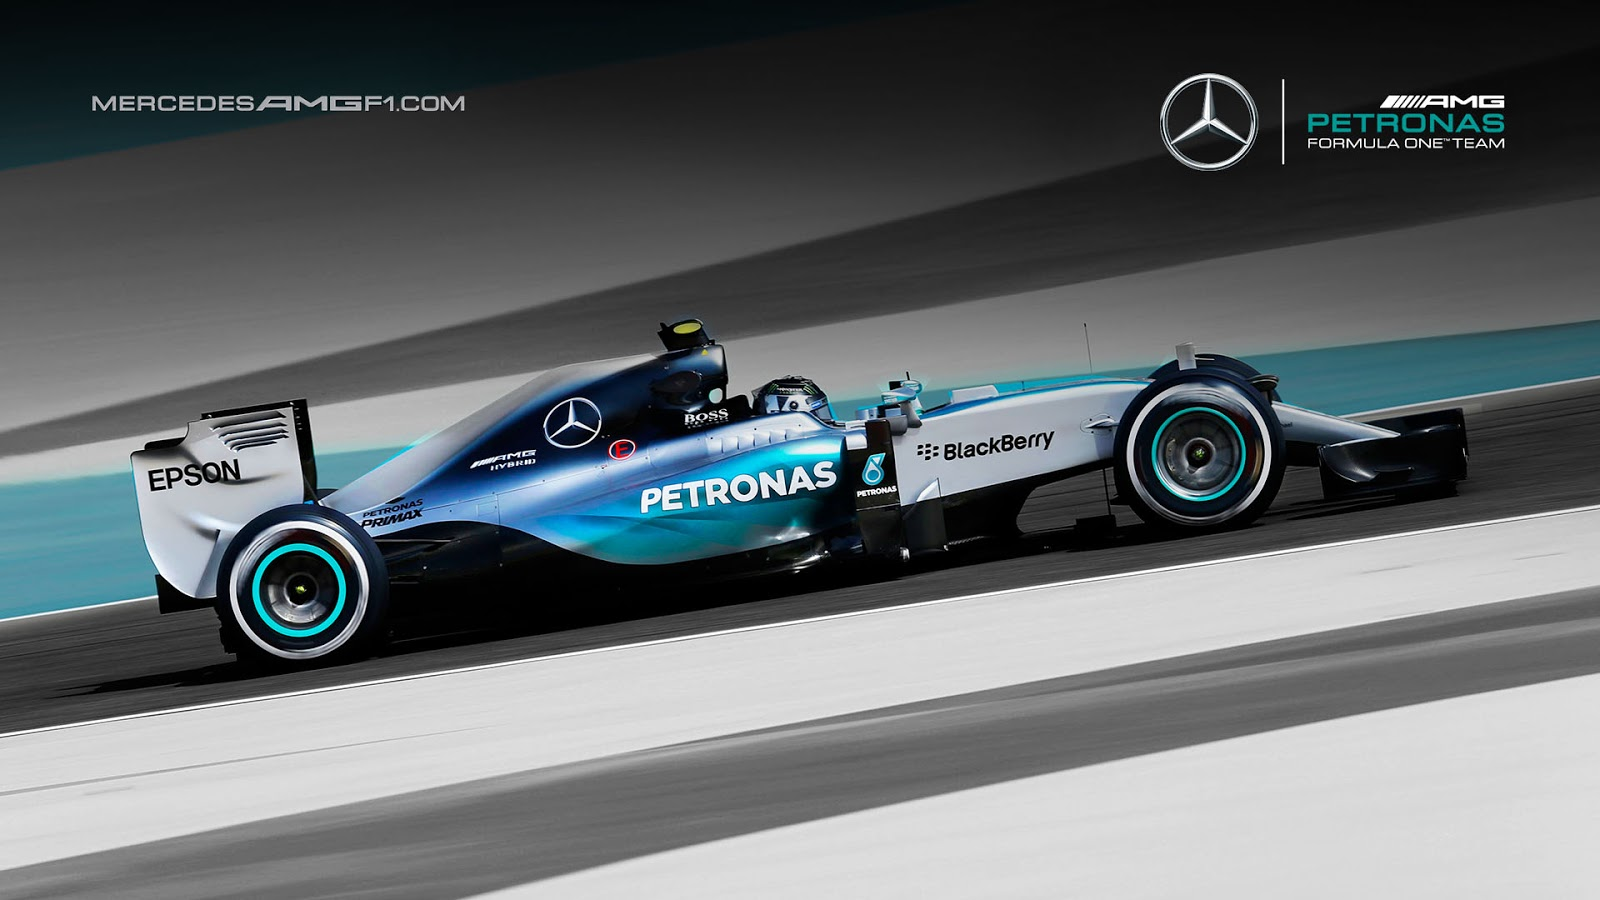 Mercedes amg petronas w06 2015 f1 wallpaper kfzoom for Mercedes benz f1